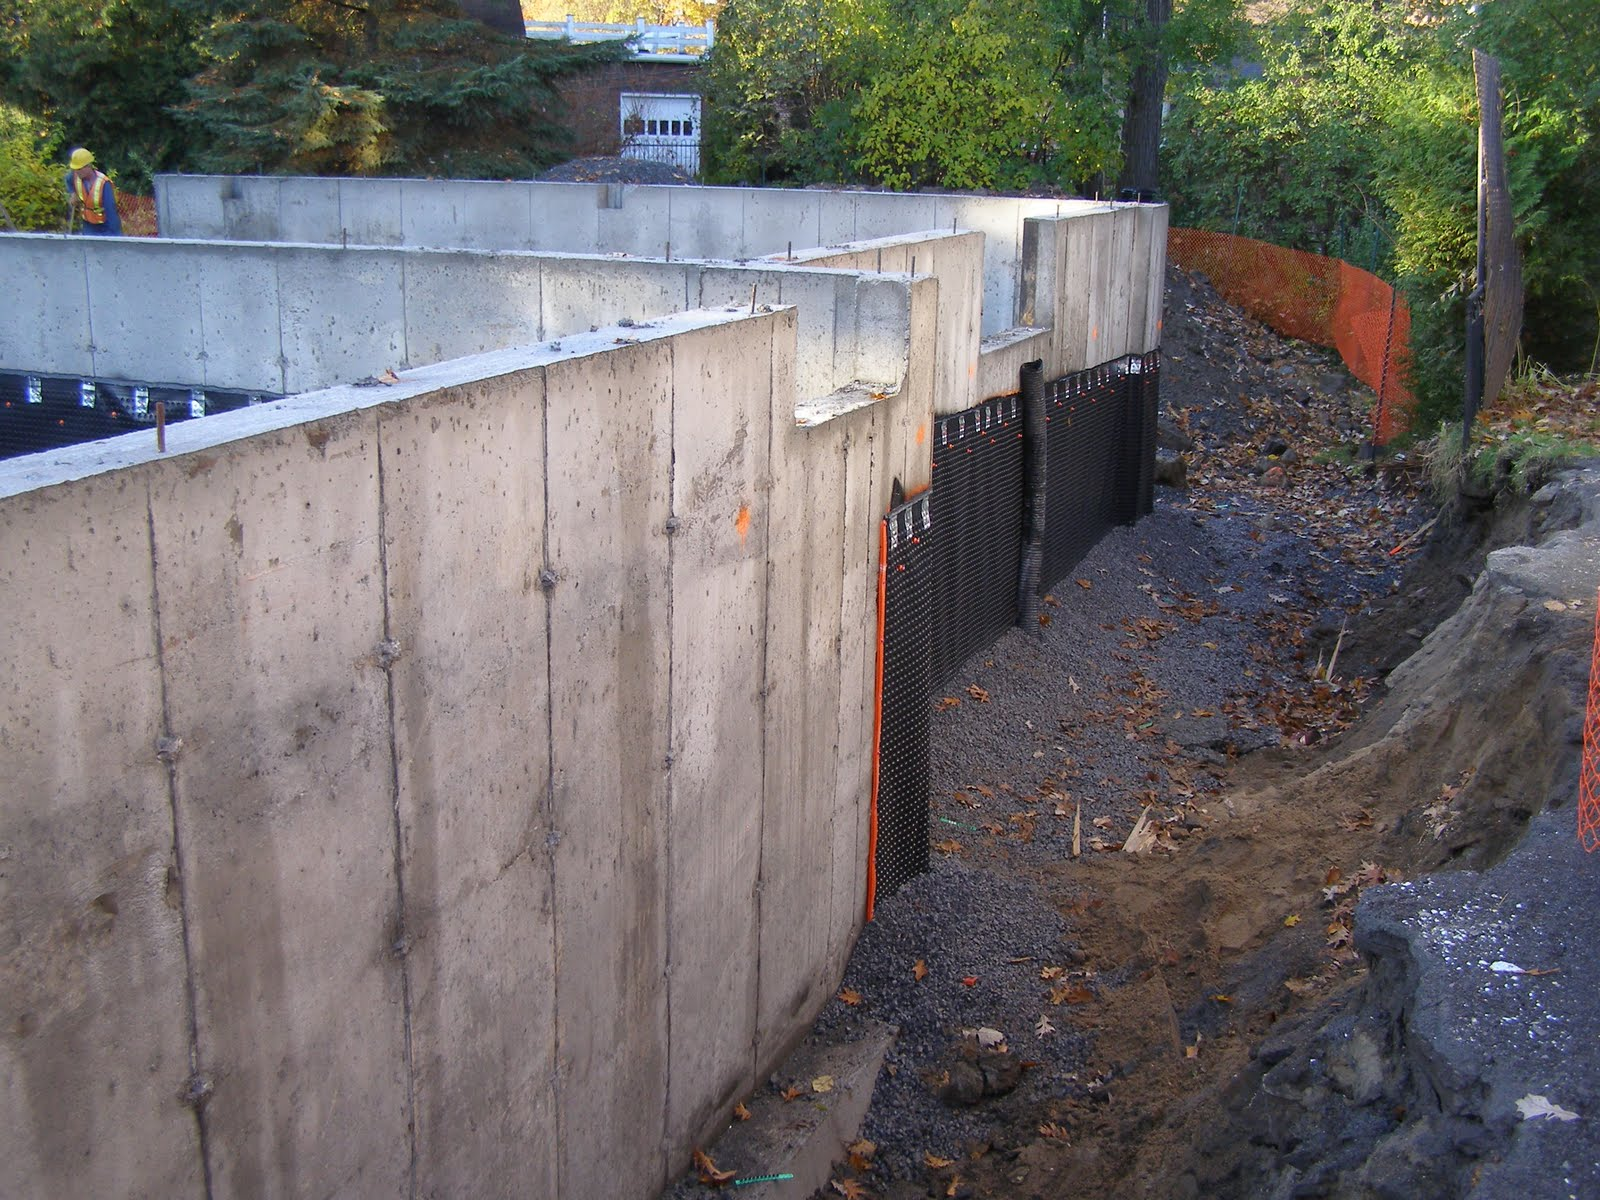 Foundation Waterproofing Membrane : Move that bus waterproof membrane applied to foundation